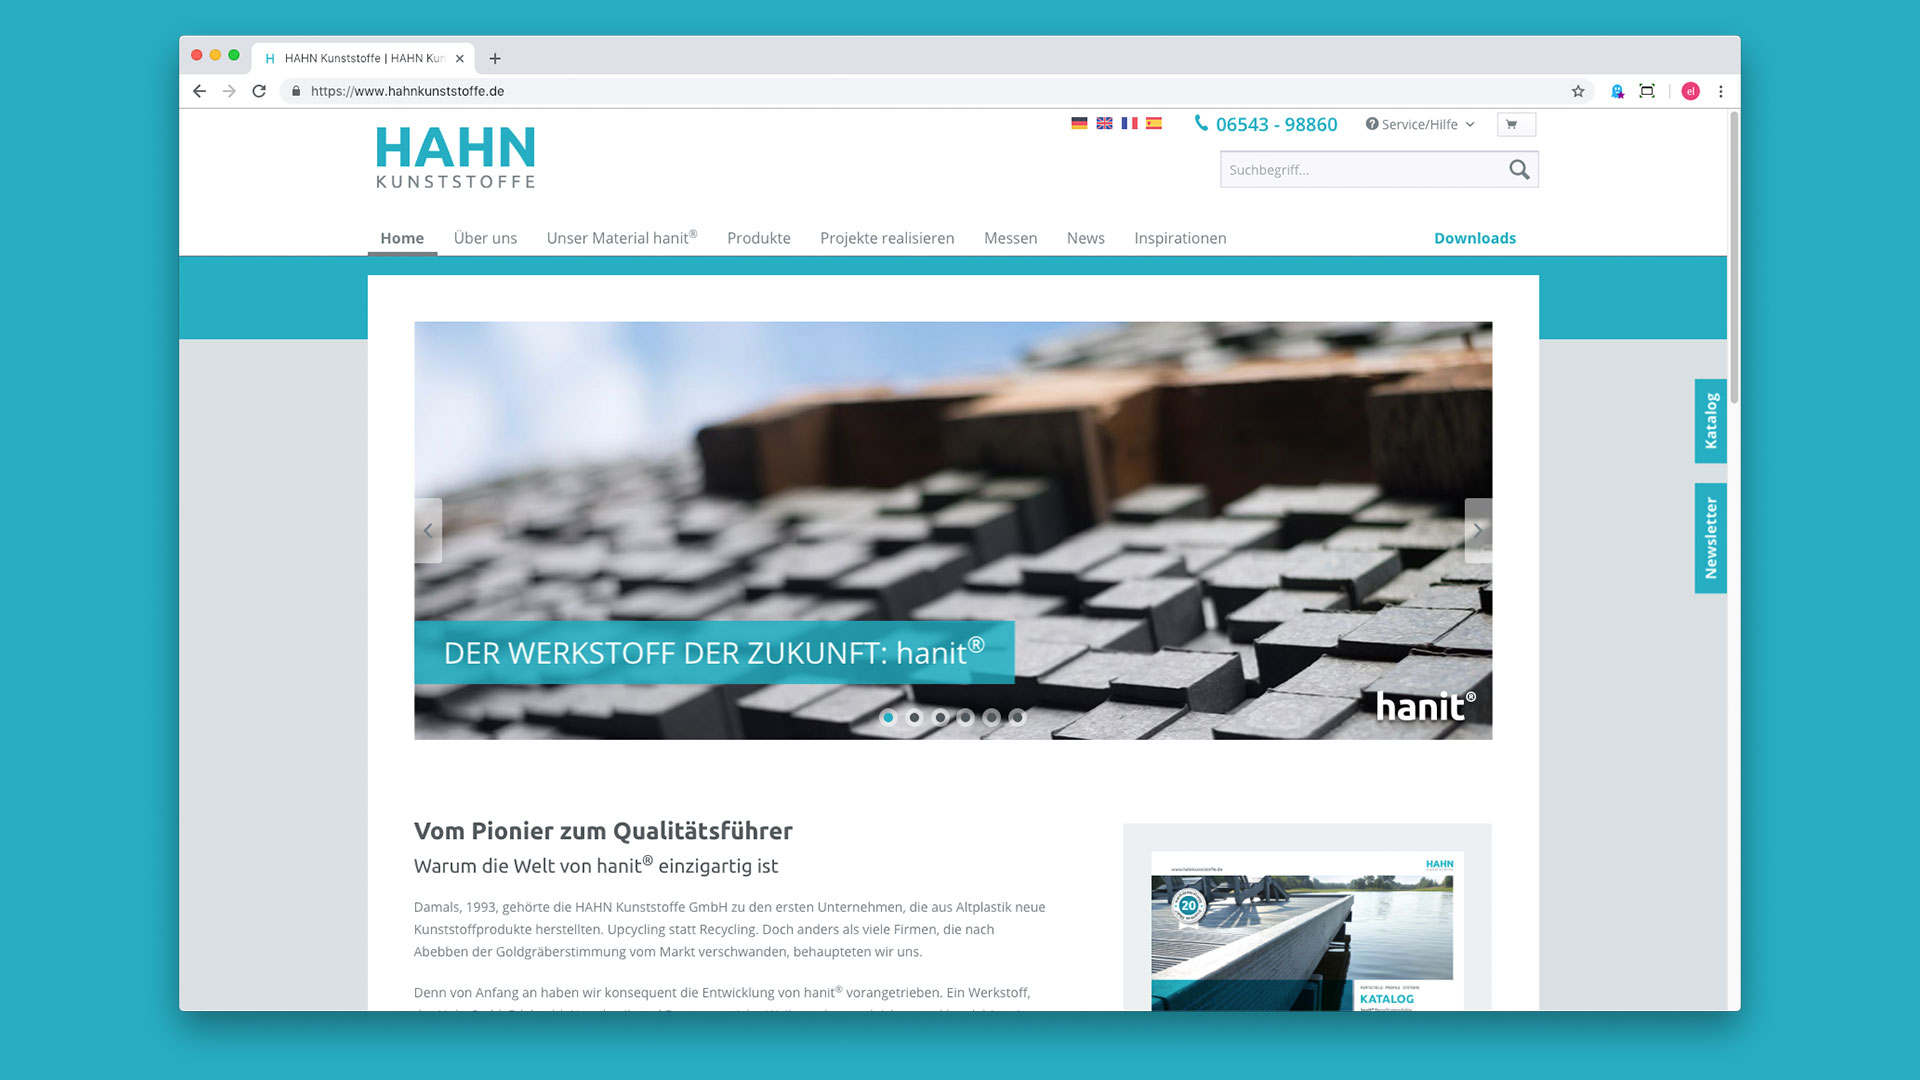 Hahn Kunststoffe Website Homepage